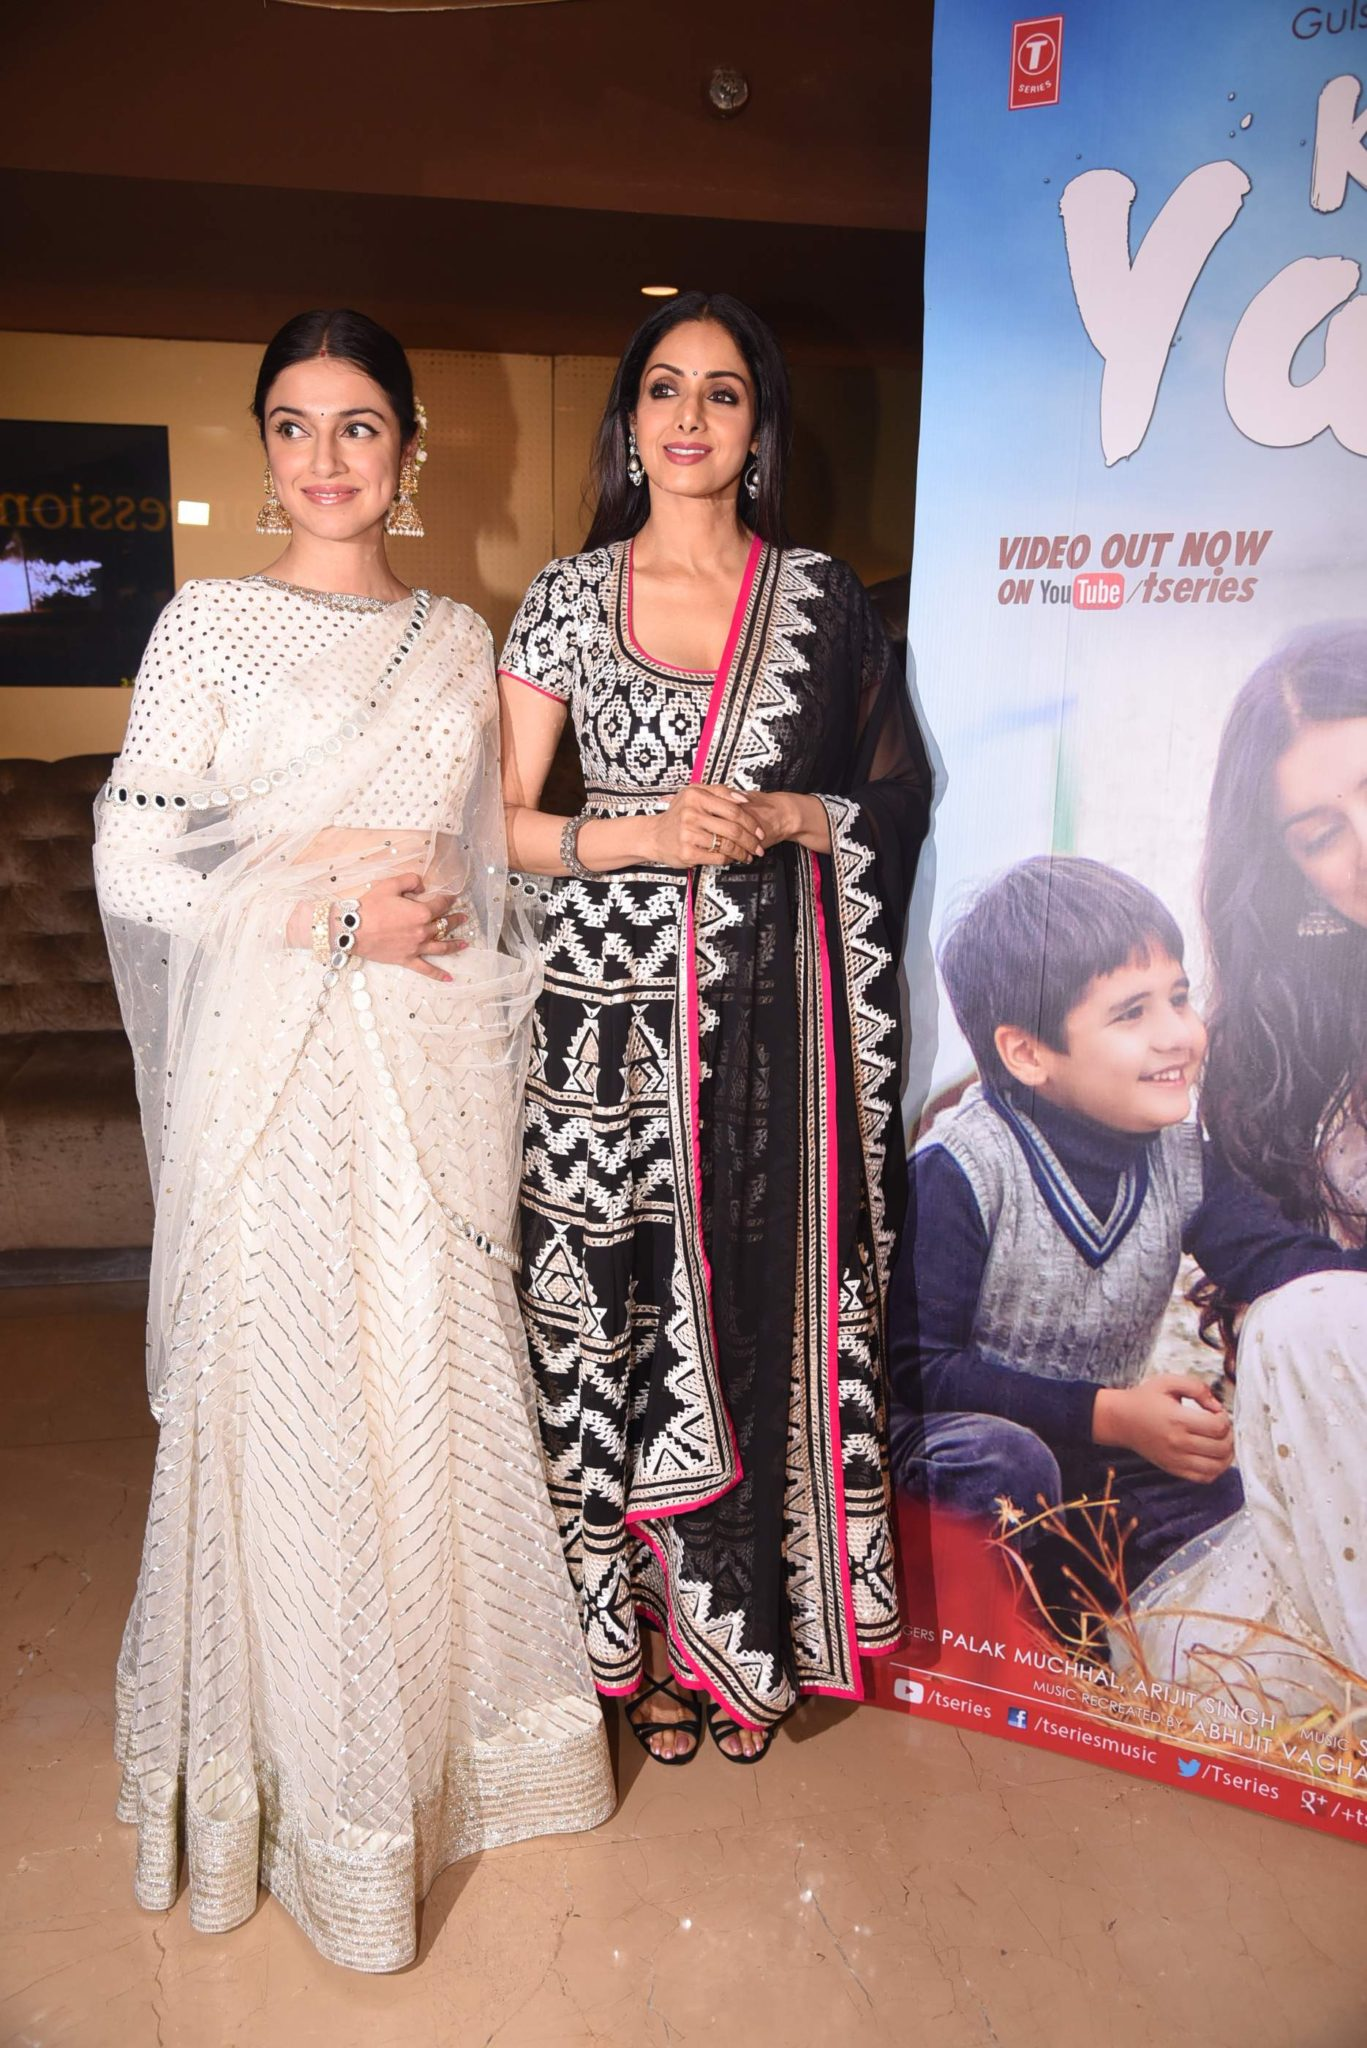 sridevi Photo Stills Of Beautiful Sridevi From 'Kabhi Yaadon Mein' Event Sridevi TSeries 41